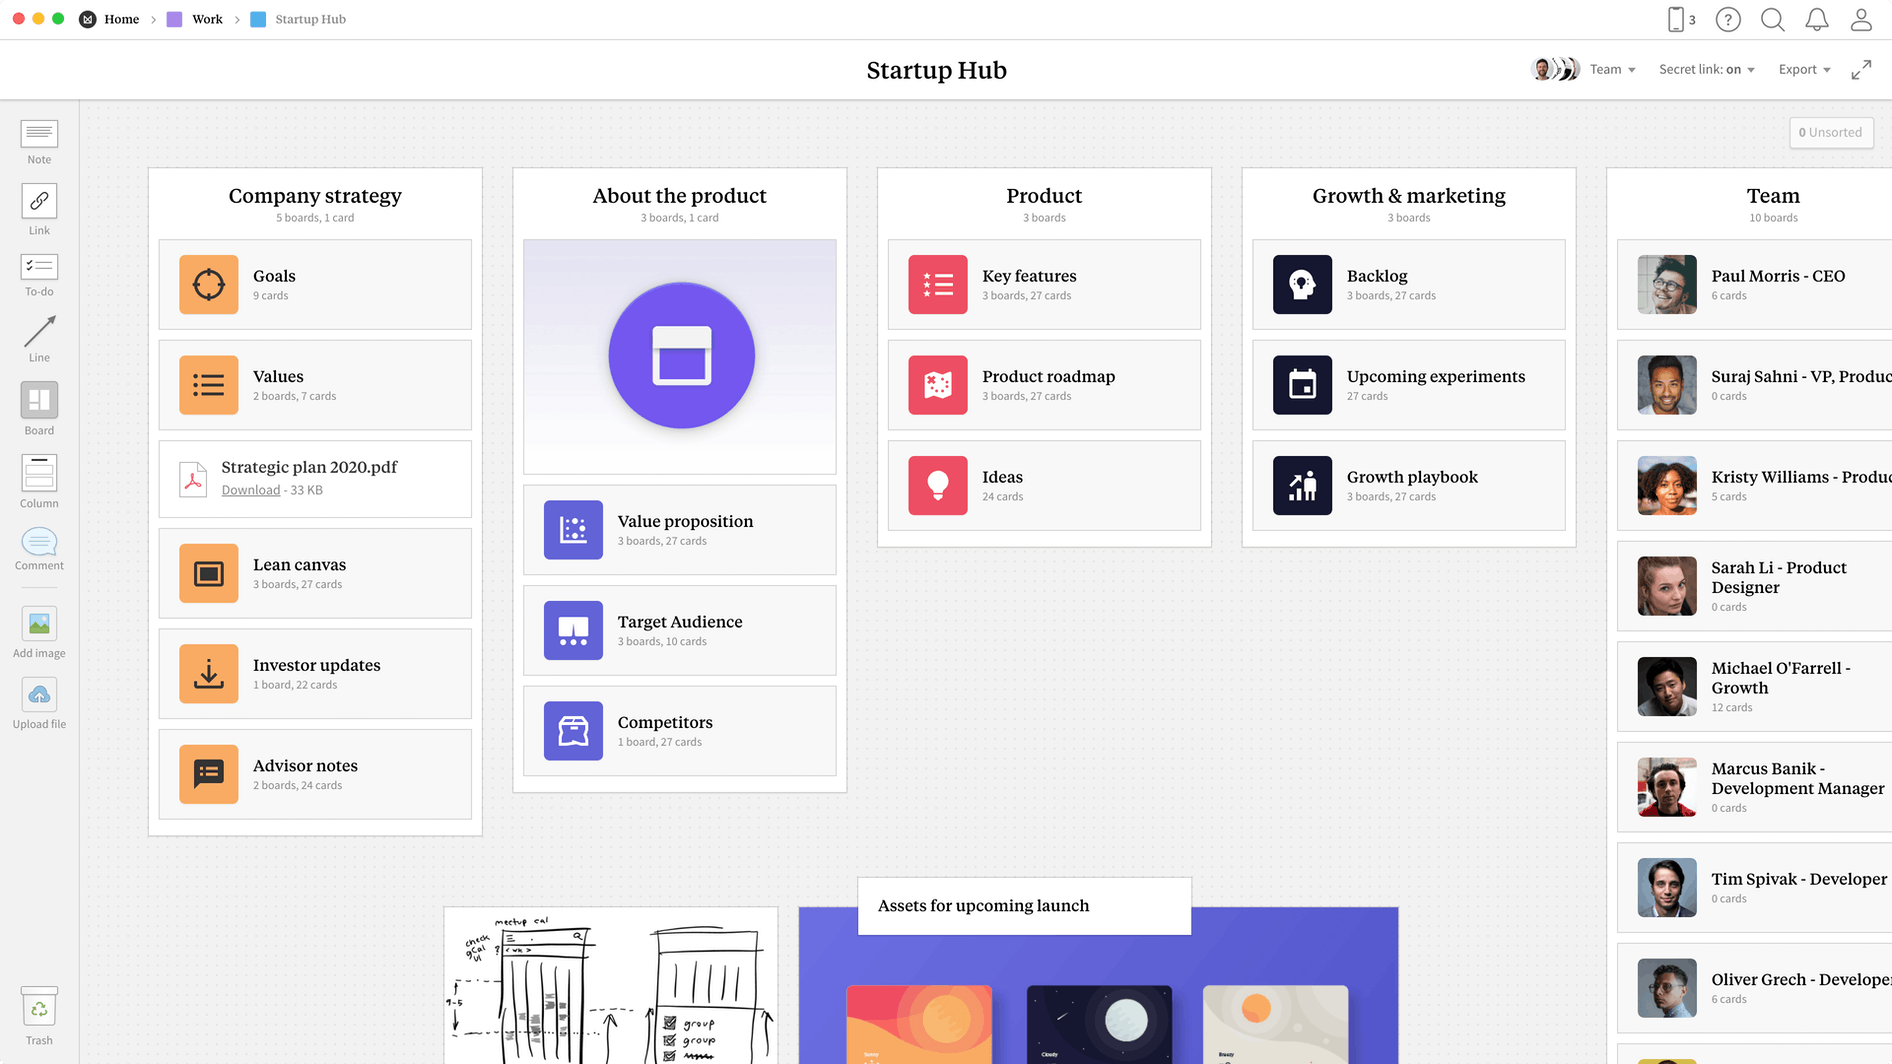 Startup Hub Template, within the Milanote app